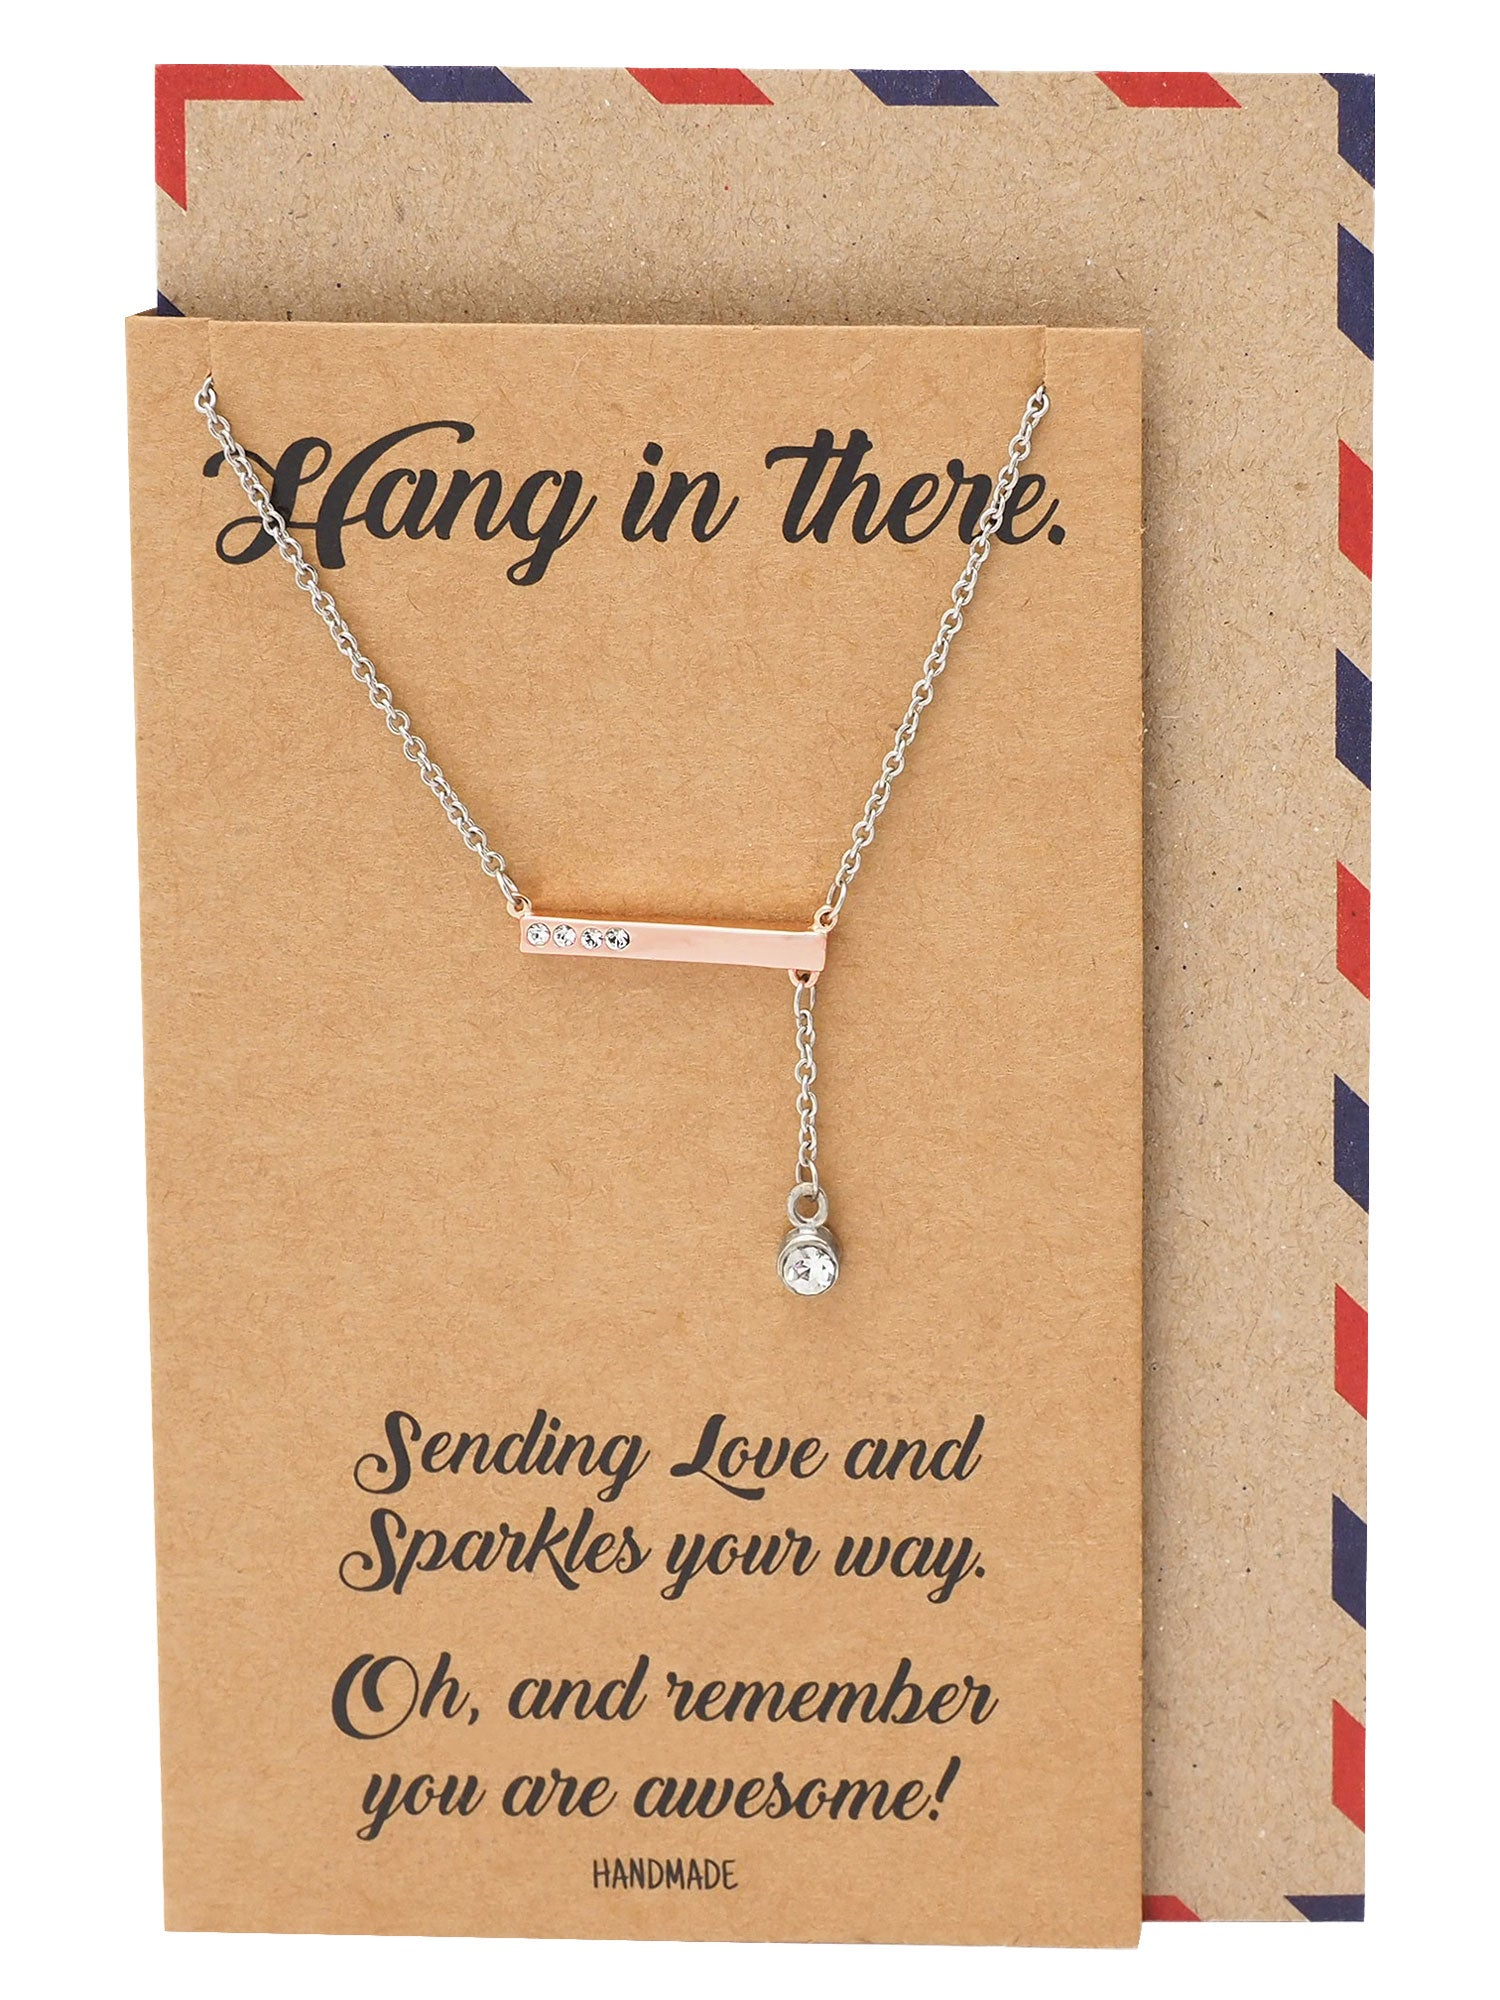 Alona Crystal Hangs in Bar Pendant Necklace Inspirational Jewelry Greeting Card - Quan Jewelry